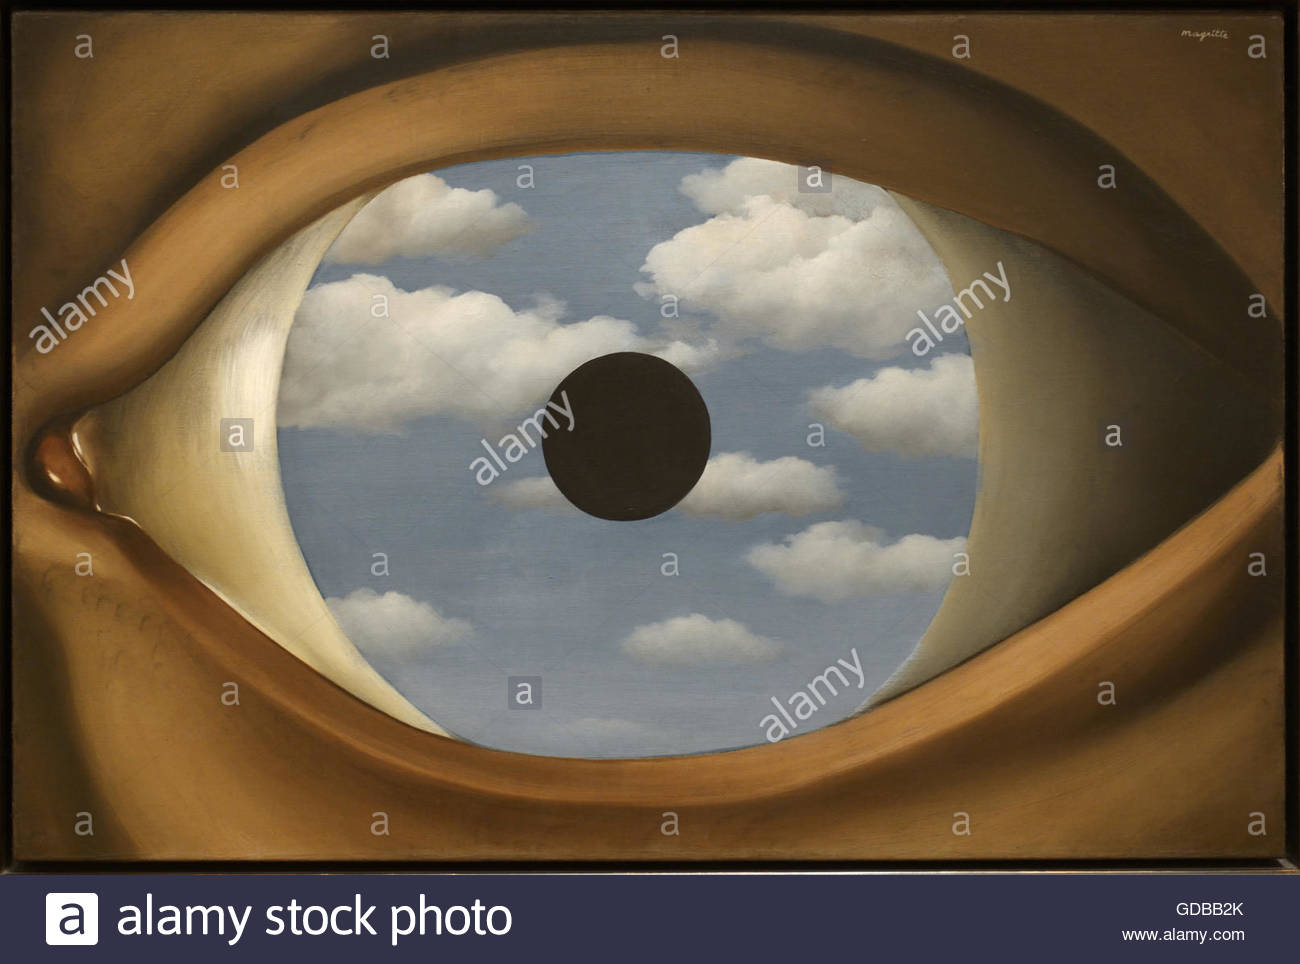 The False Mirror (Le Faux Miroir), 1928, Rene Magritte image of an eye with clouds - Stock Image